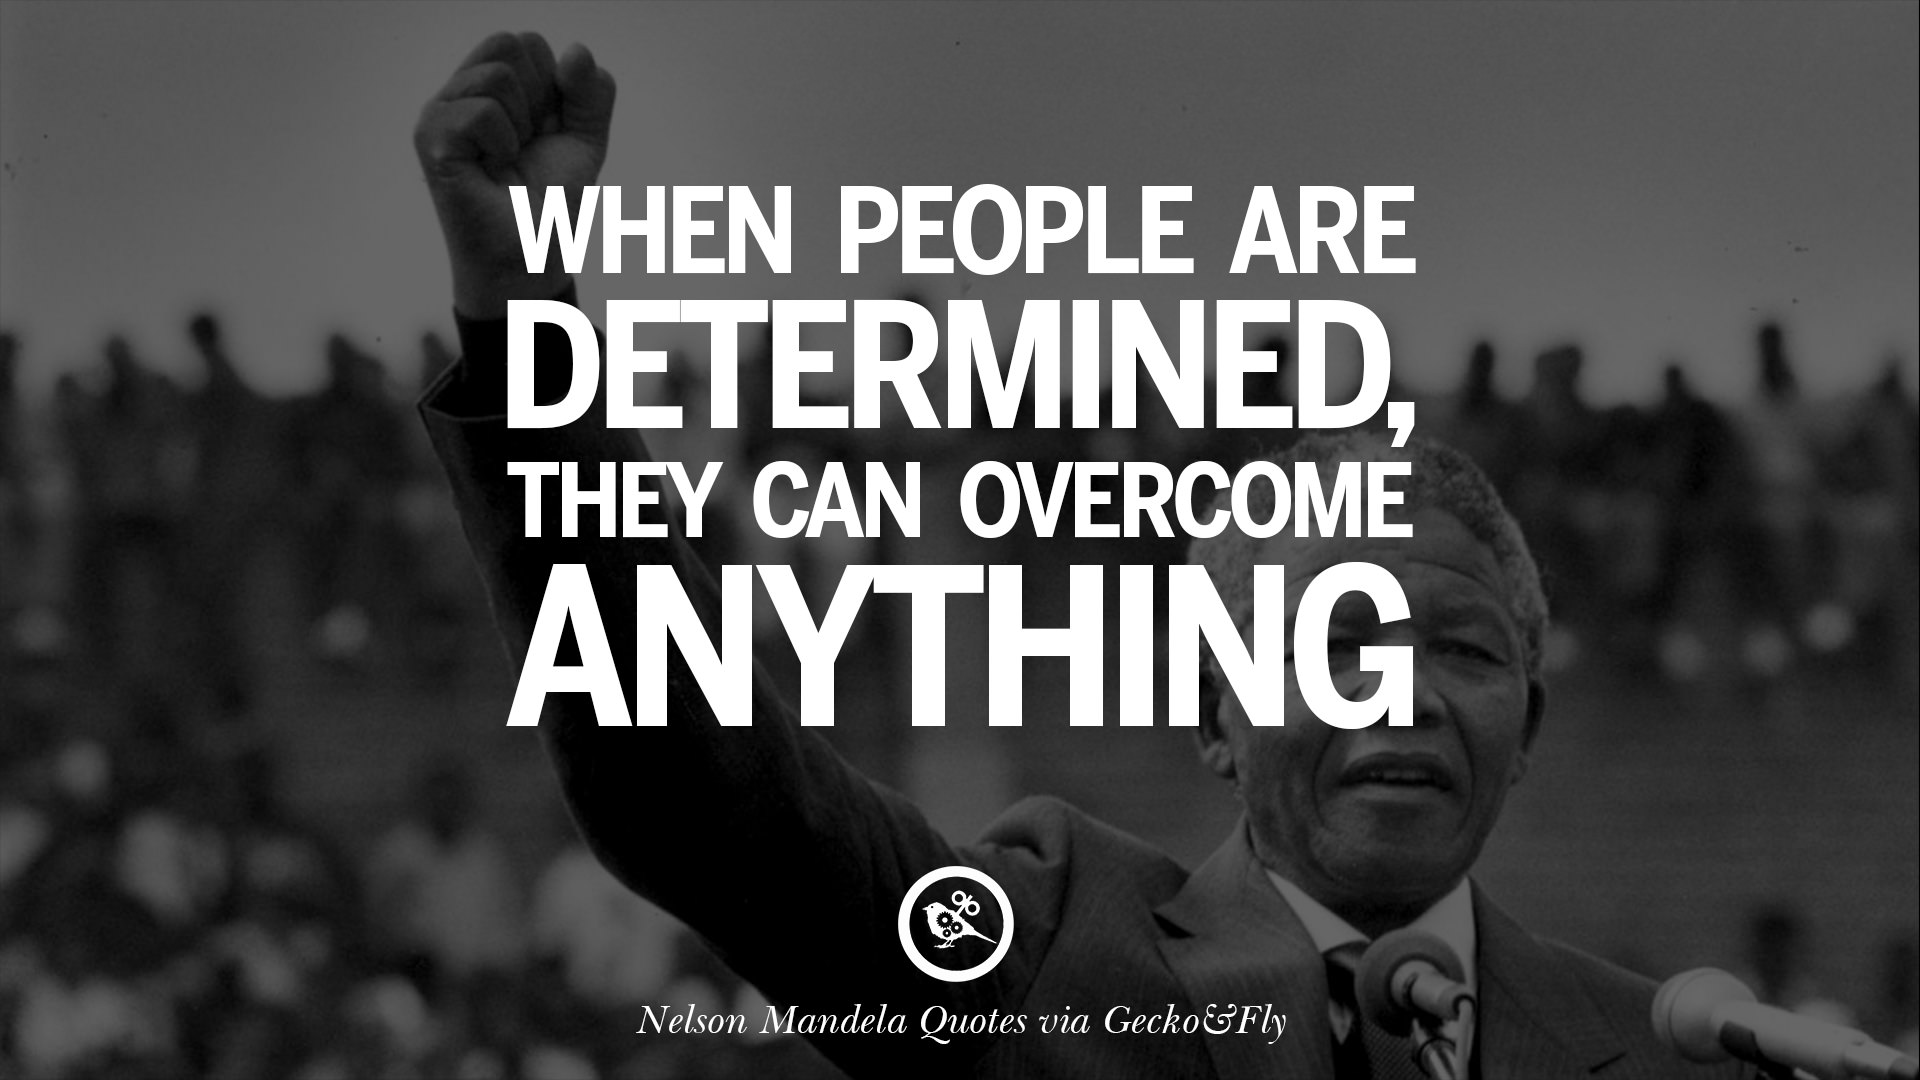 Image of: Freedom Nelson Mandela Quotes On Freedom When People Are Determined They Can Overcome Anything Pinterest 12 Nelson Mandela Quotes On Freedom Perseverance And Racism